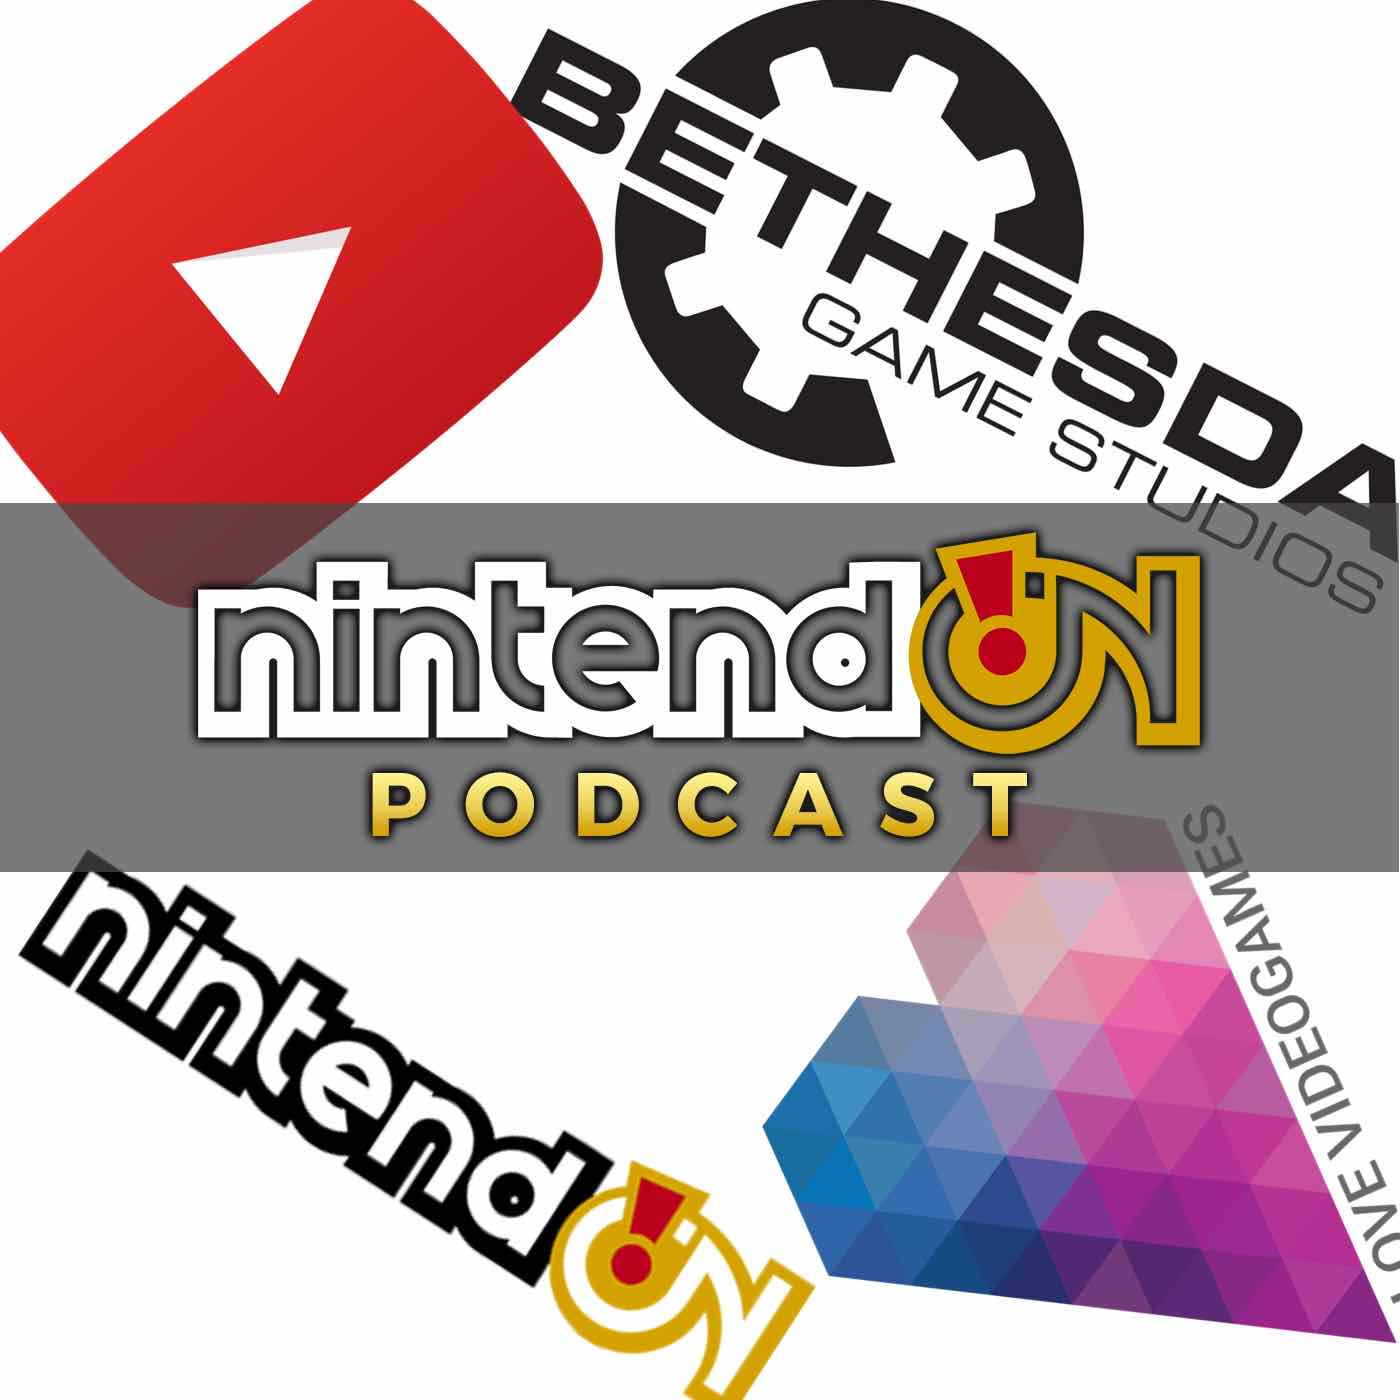 informazione podcast nintendon